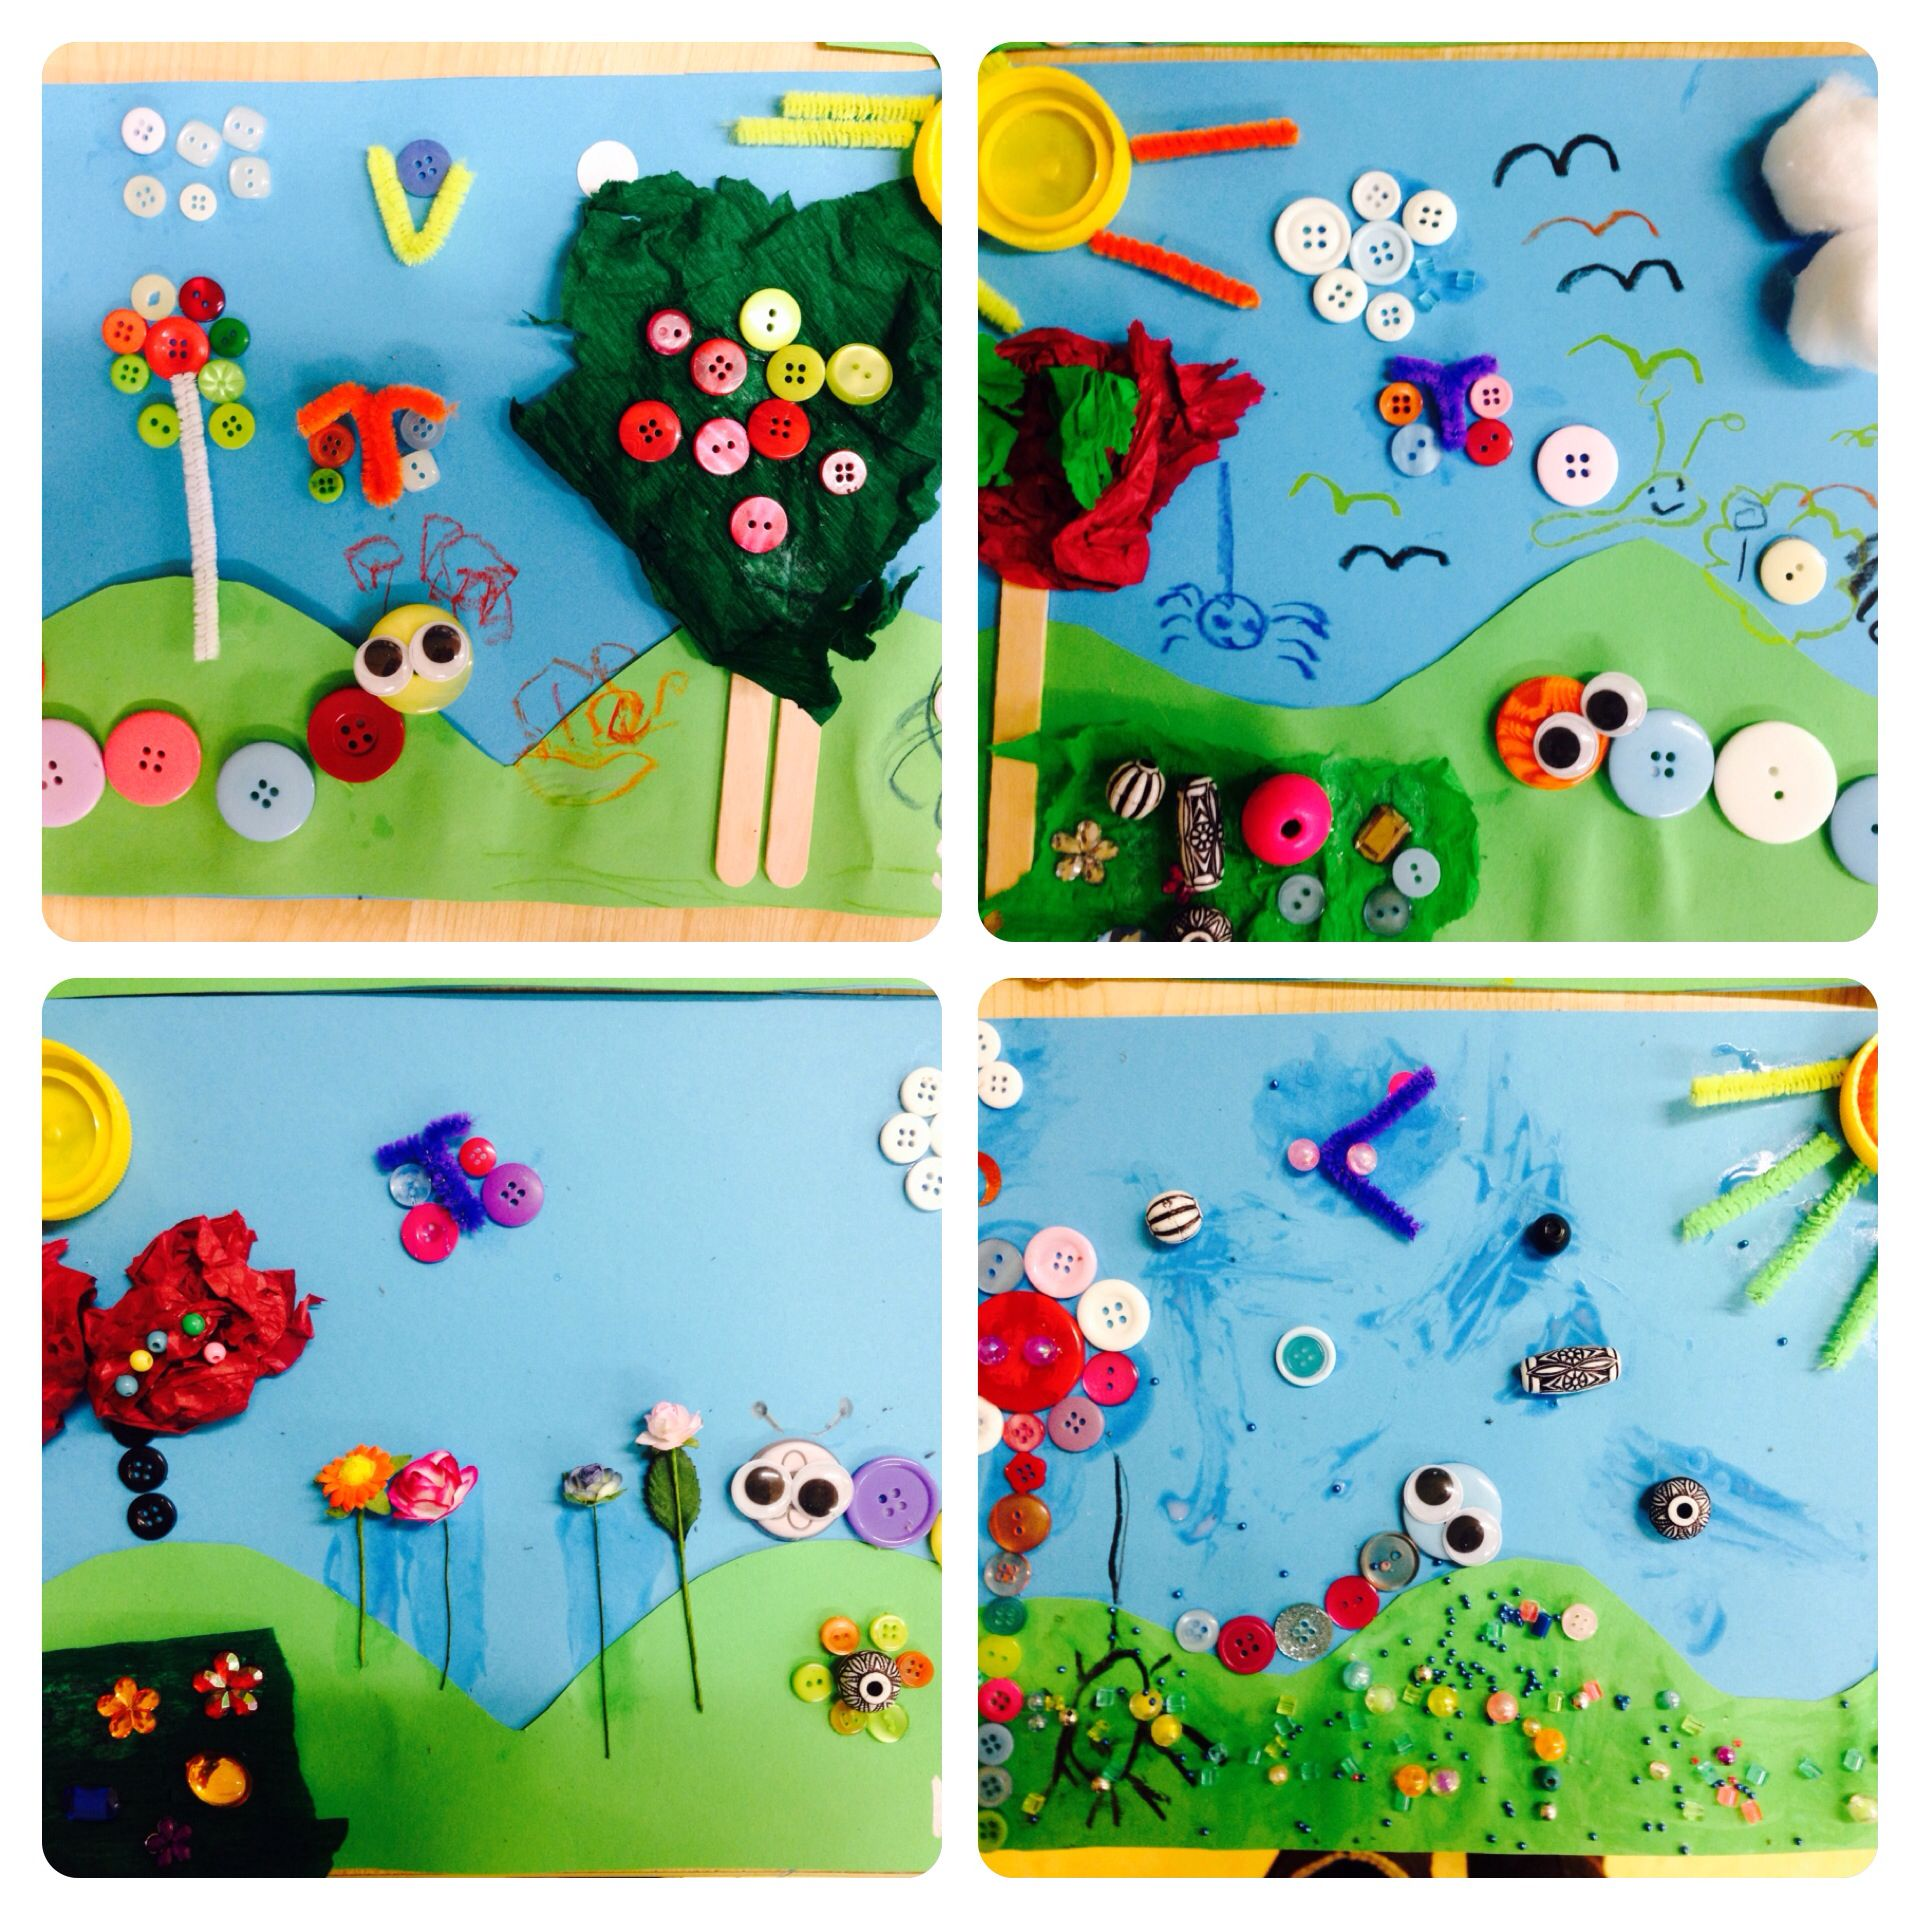 springsummer button and beads kids art and craft recycled materials art idea - Garden Art Ideas For Kids